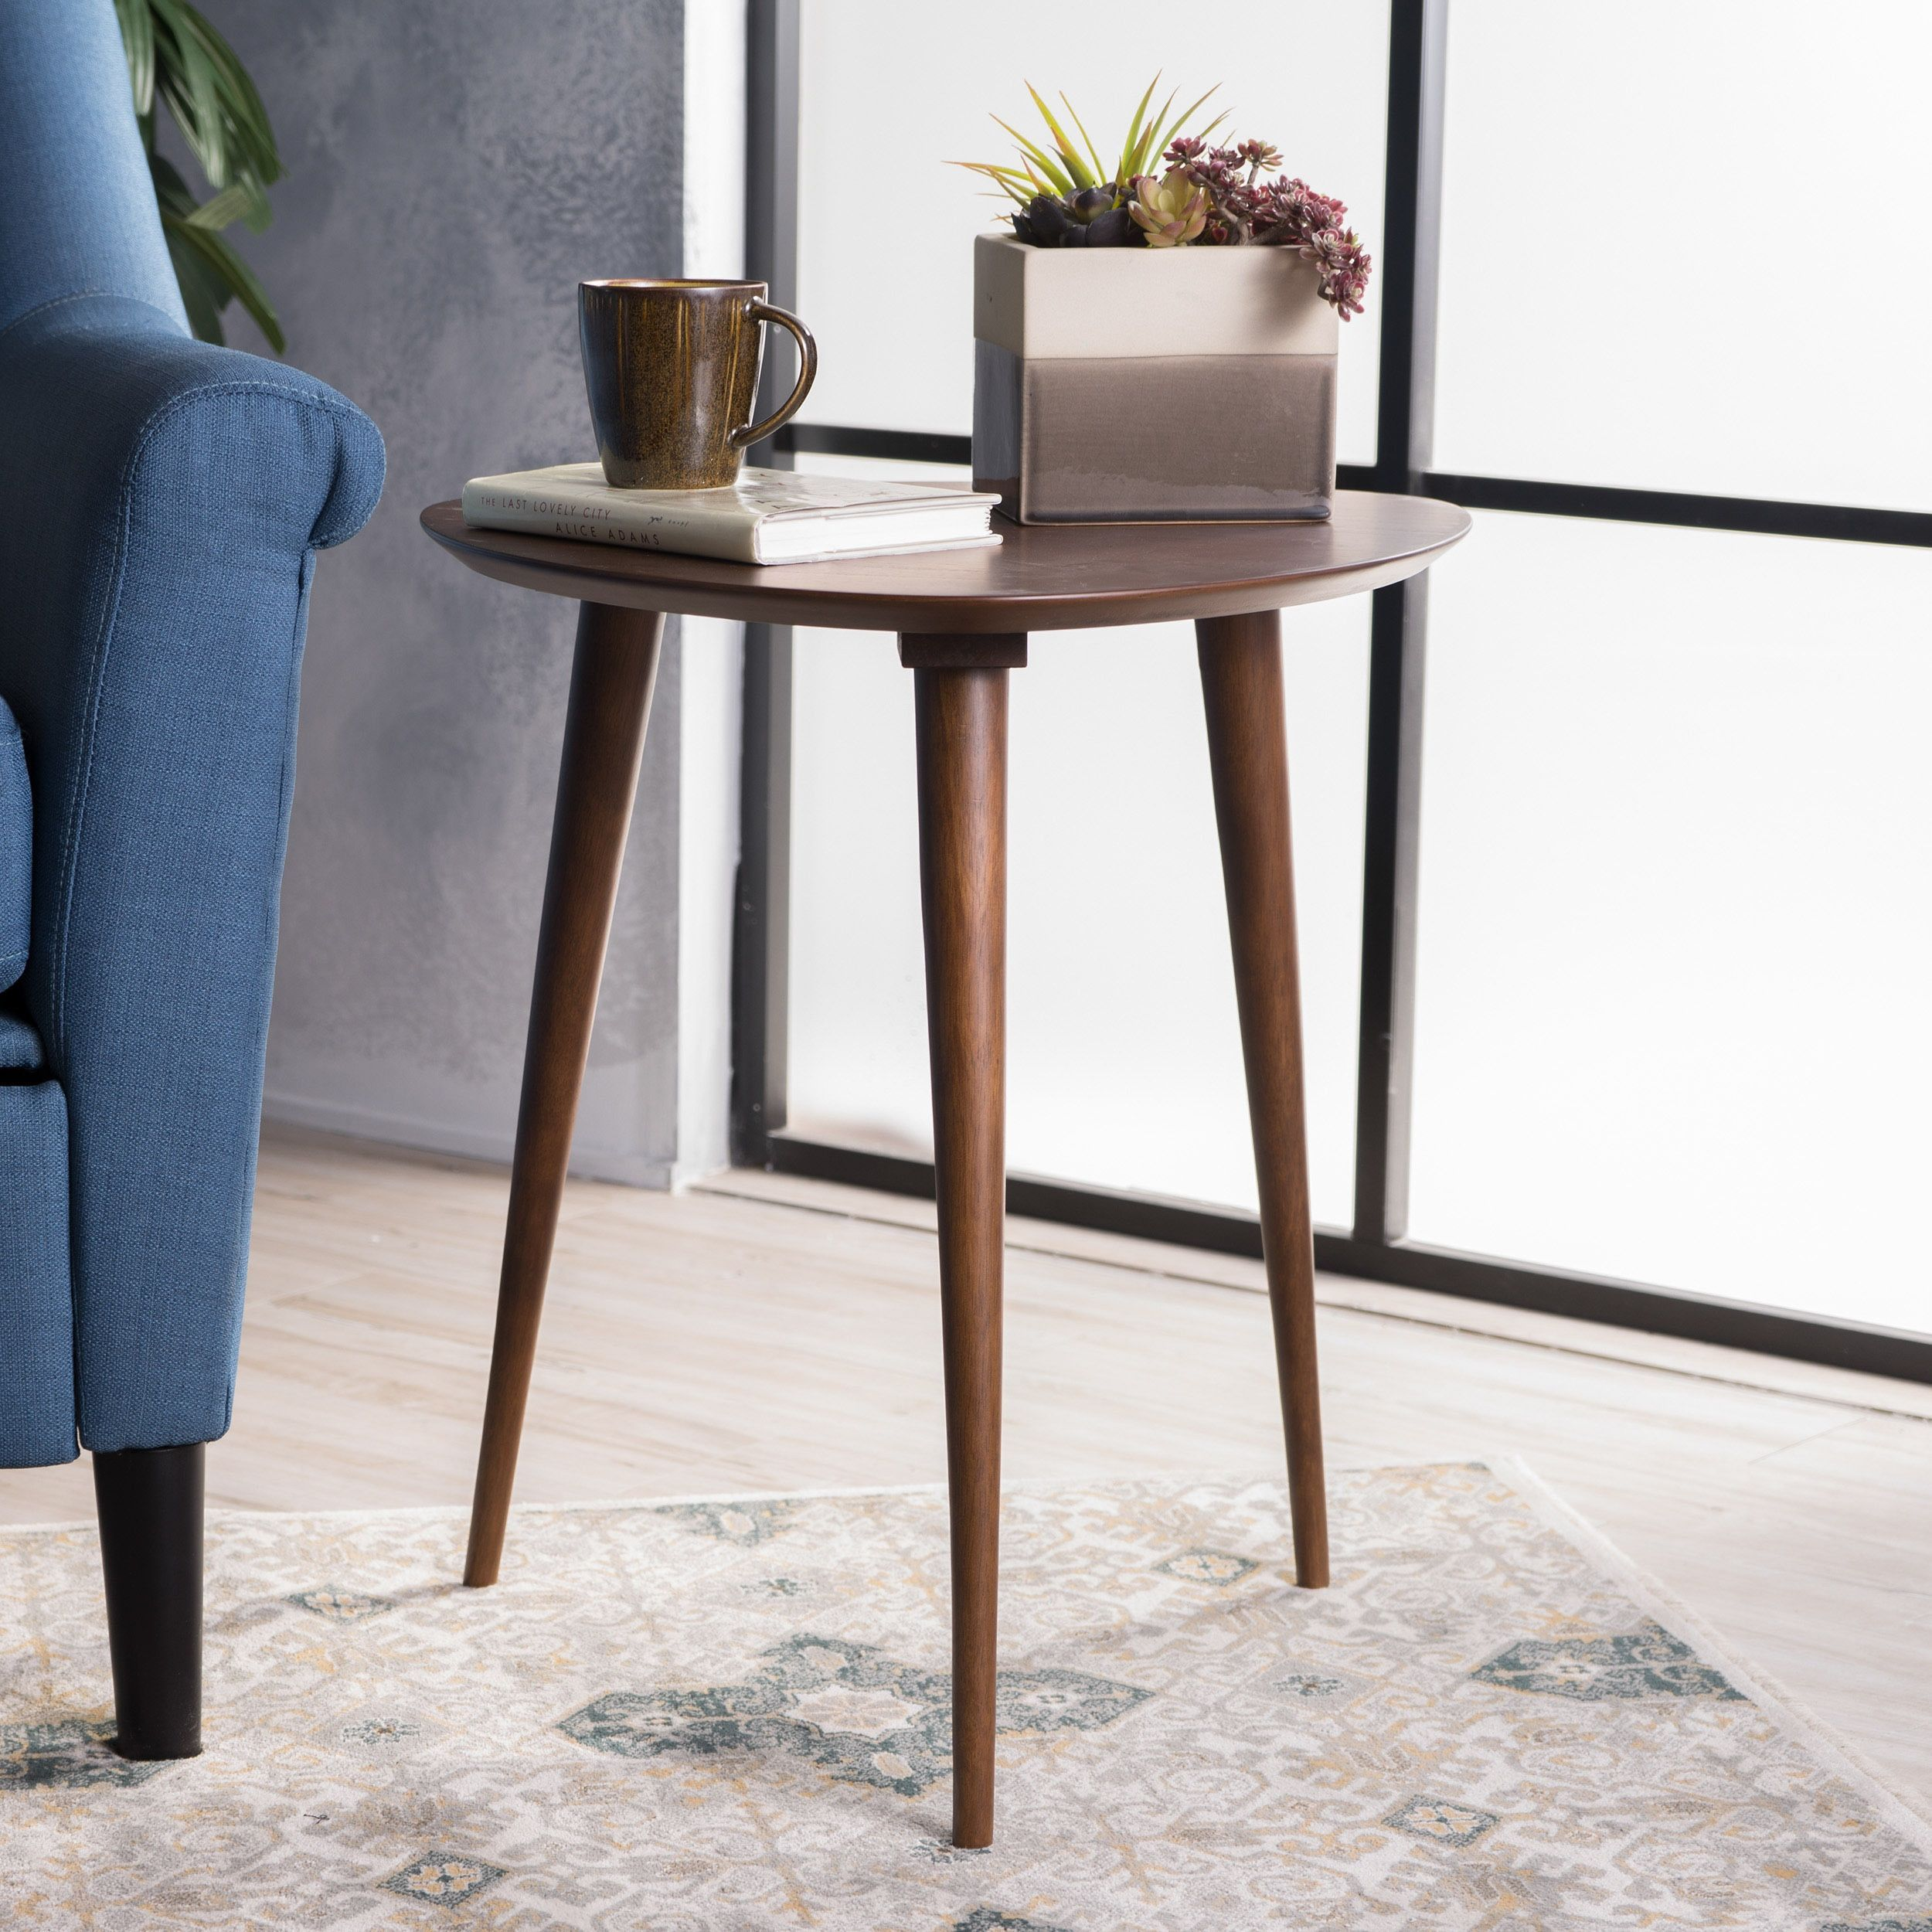 Naja midcentury wood end table by christopher knight home by